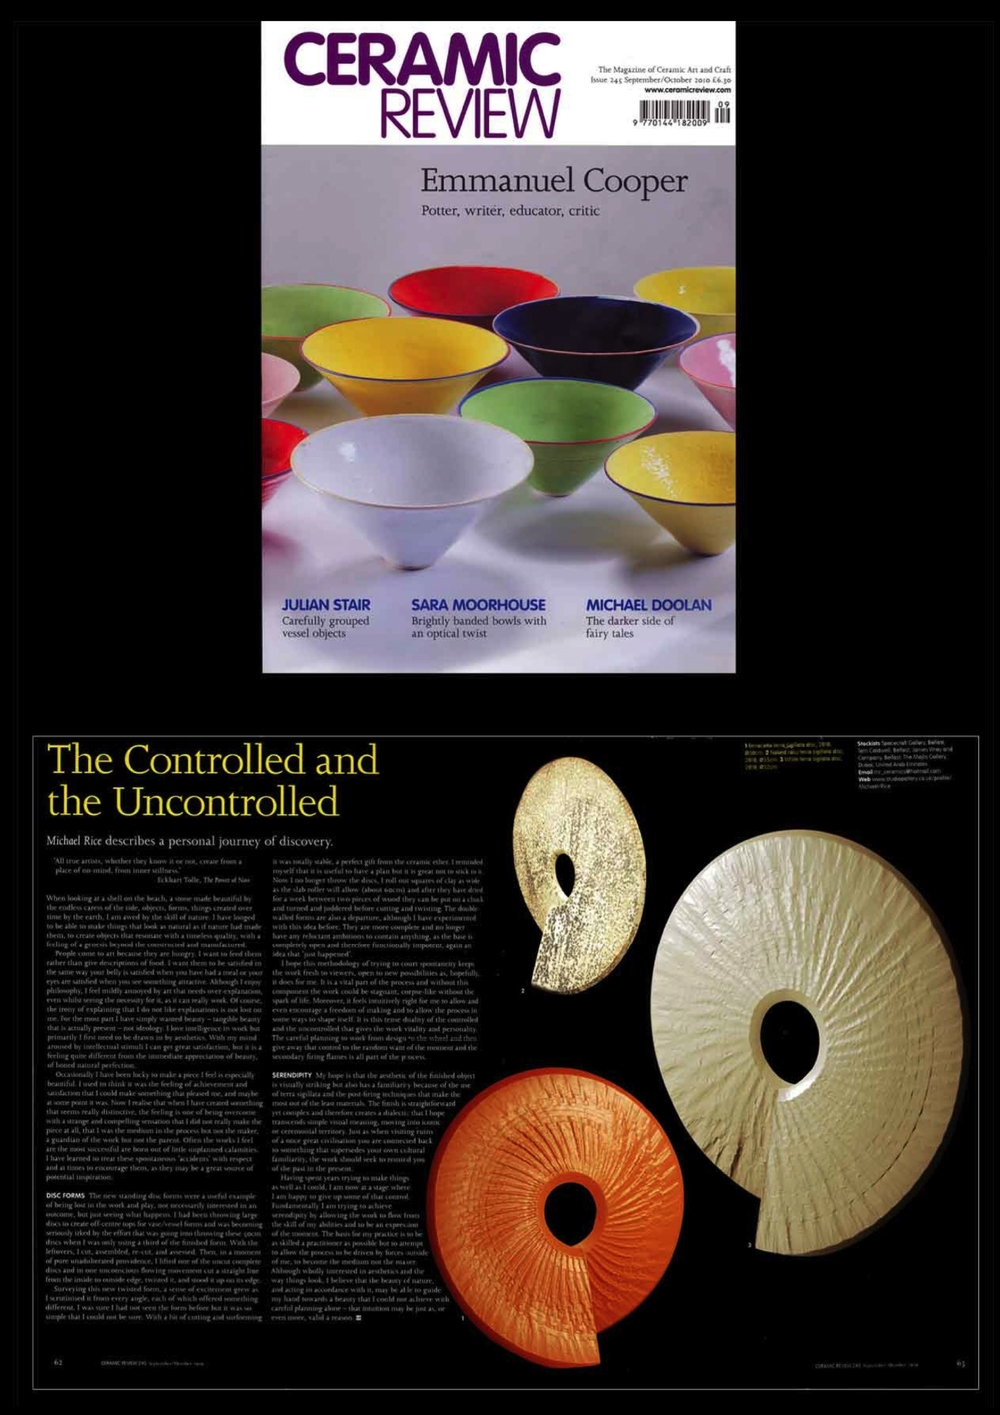 Ceramic Review Article 2010